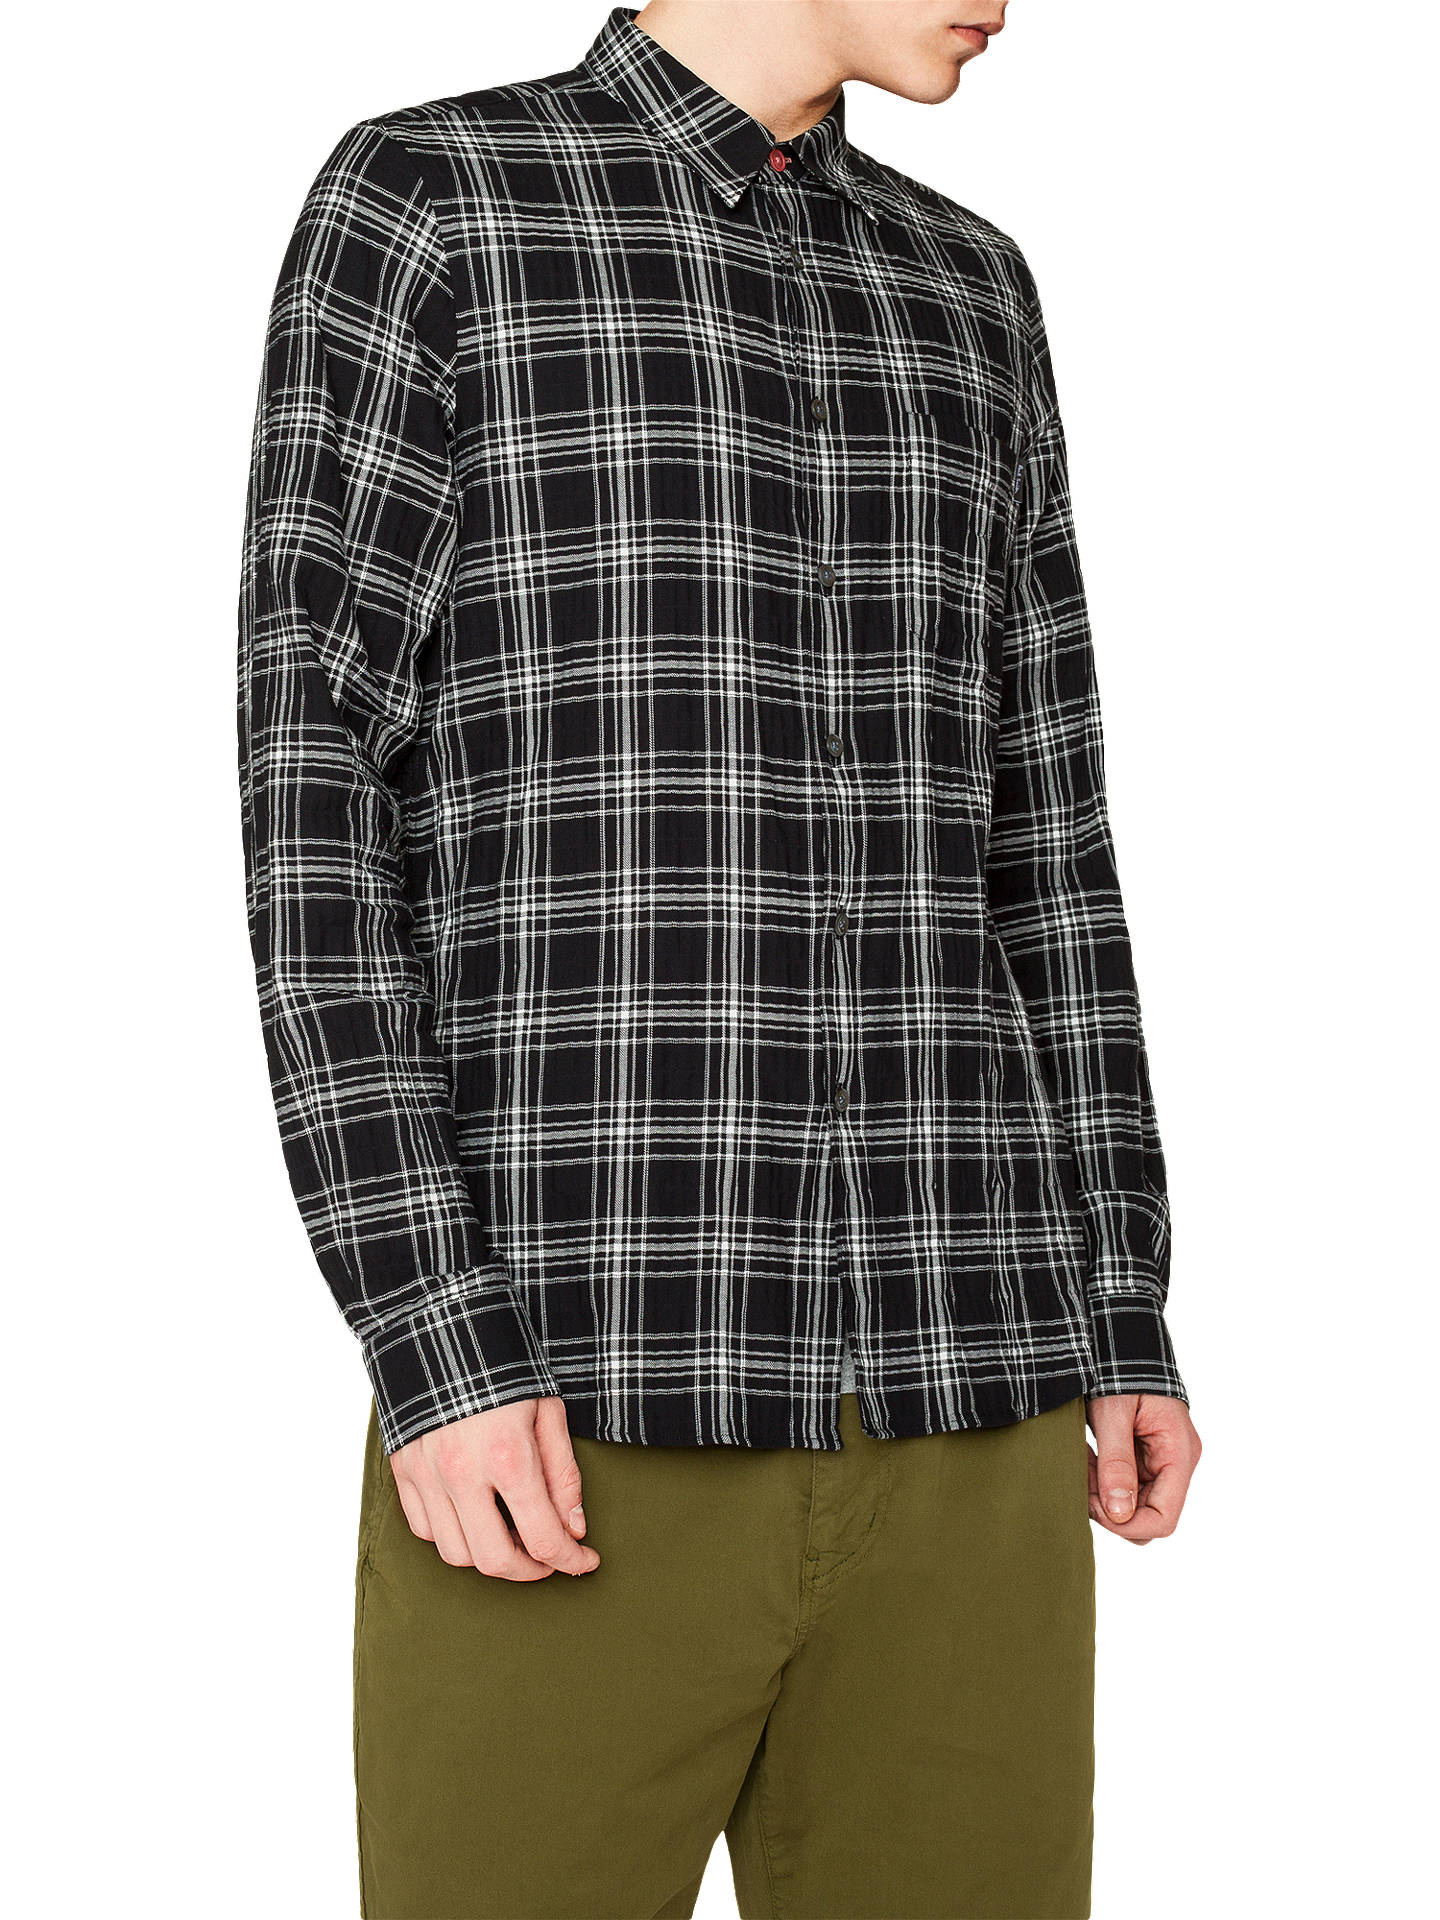 2475a4ee11aefc Buy PS Paul Smith Check Shirt, Black/White, XL Online at johnlewis.